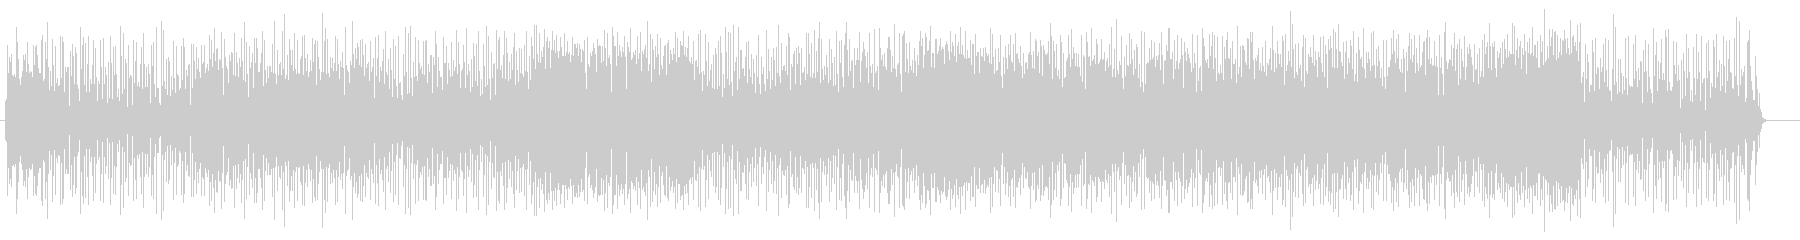 Game BGM comical electronic sound sound's unreproduced waveform